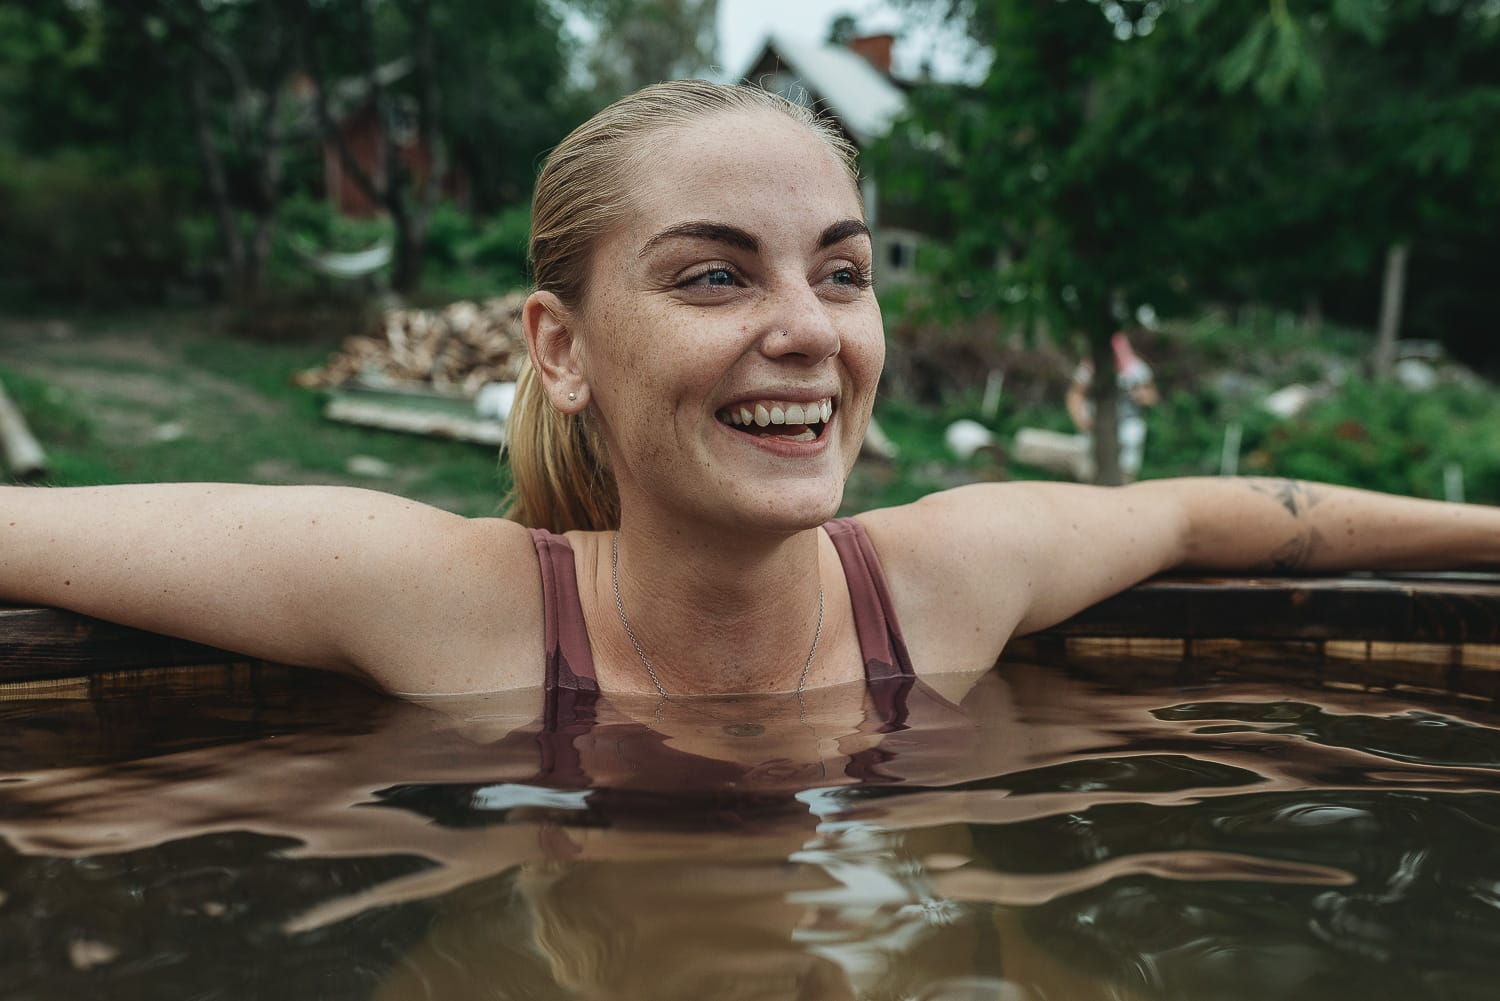 woman laughing in an outdoor hot tub